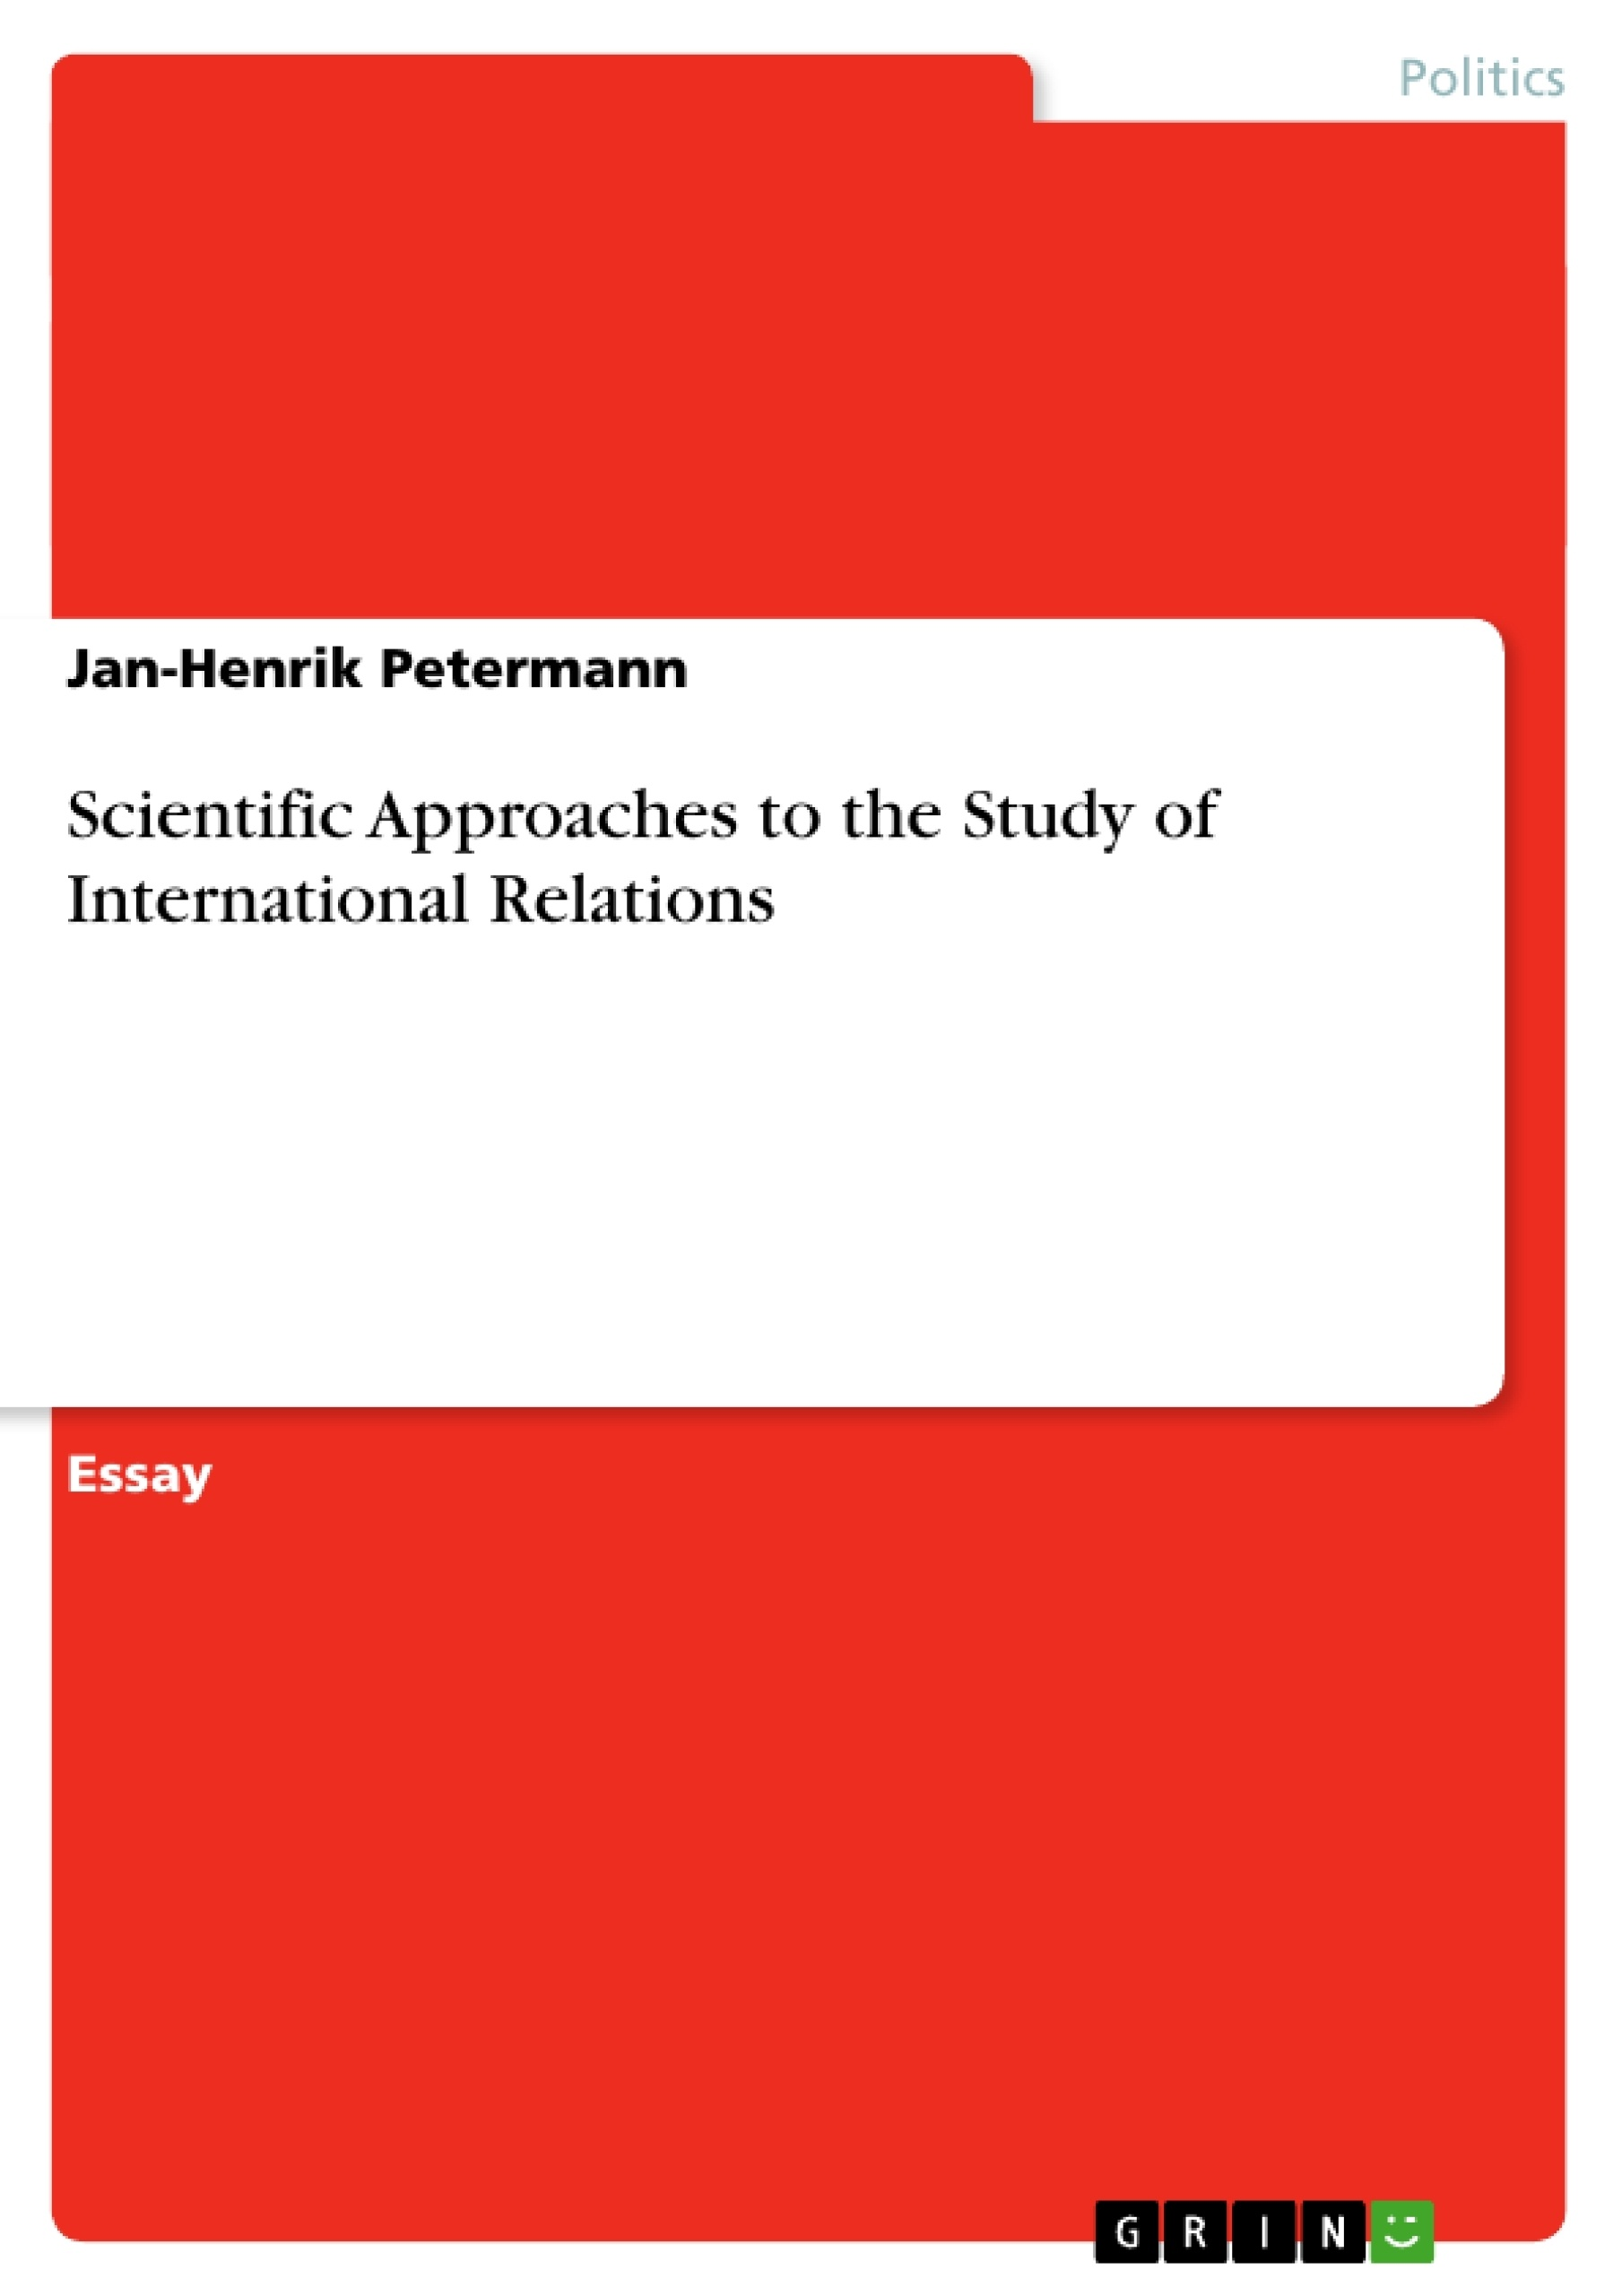 Scientific Approaches To The Study Of International Relations   Scientific Approaches To The Study Of International Relations